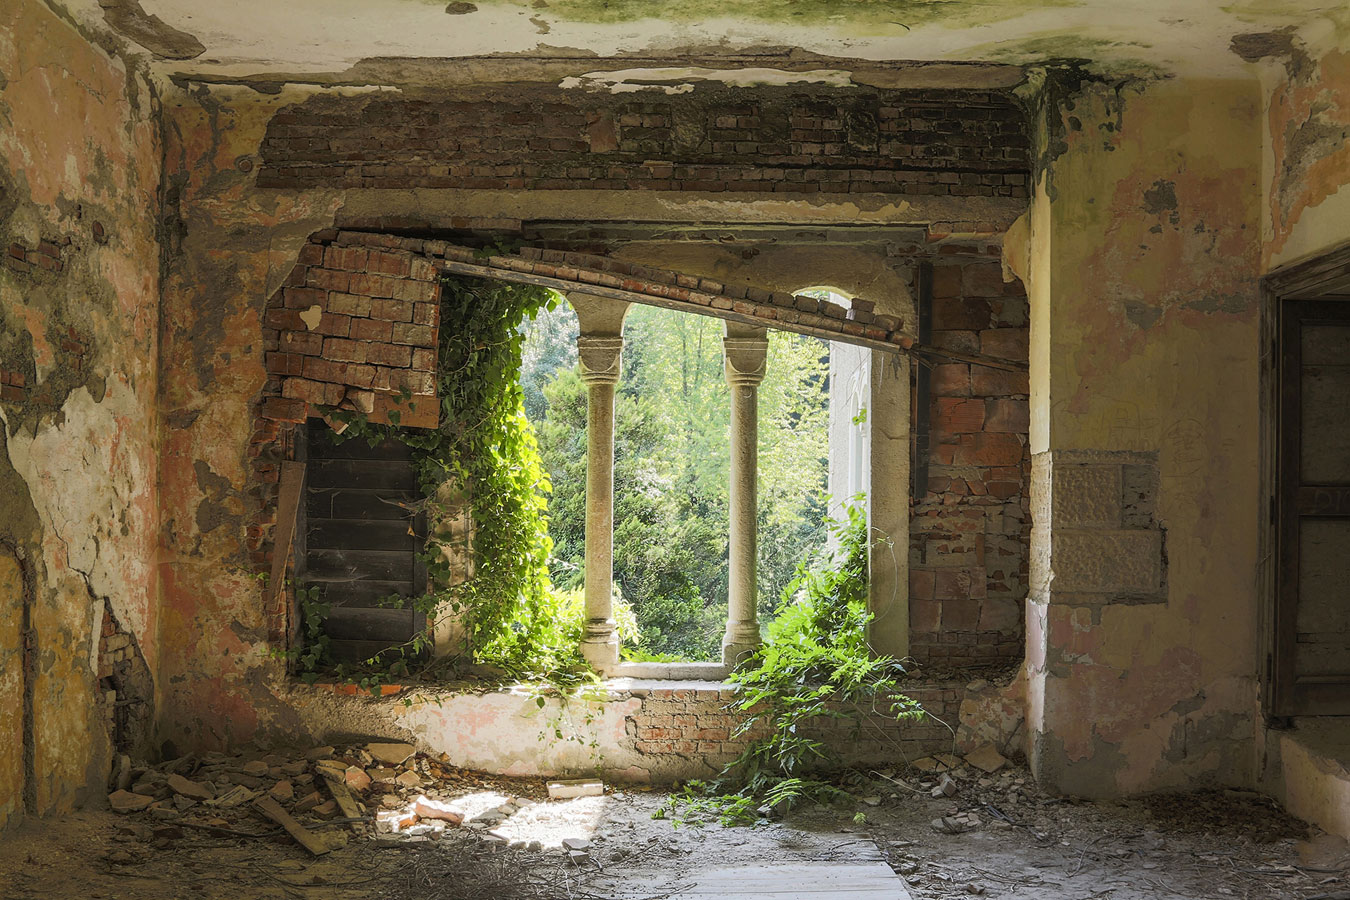 © Jonk, Abandoned Castle, Montenegro, Photography 20 x 30, The Chelsea International Photography Competition